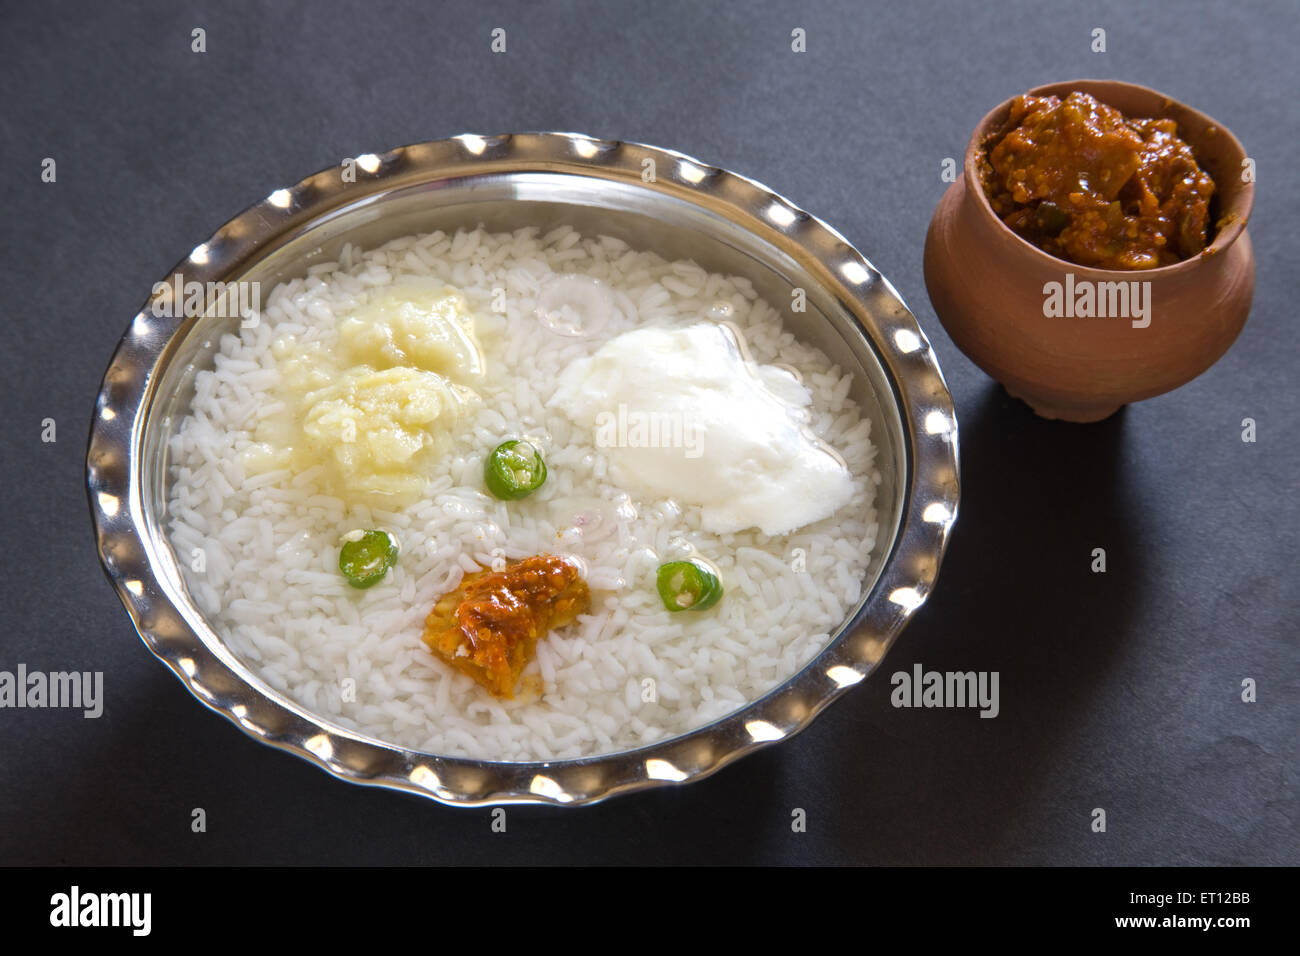 Indian lunch pakhala rice pickle mash potato with chillies and yoghurt in steel bowl with pickle in earthen pot - Stock Image